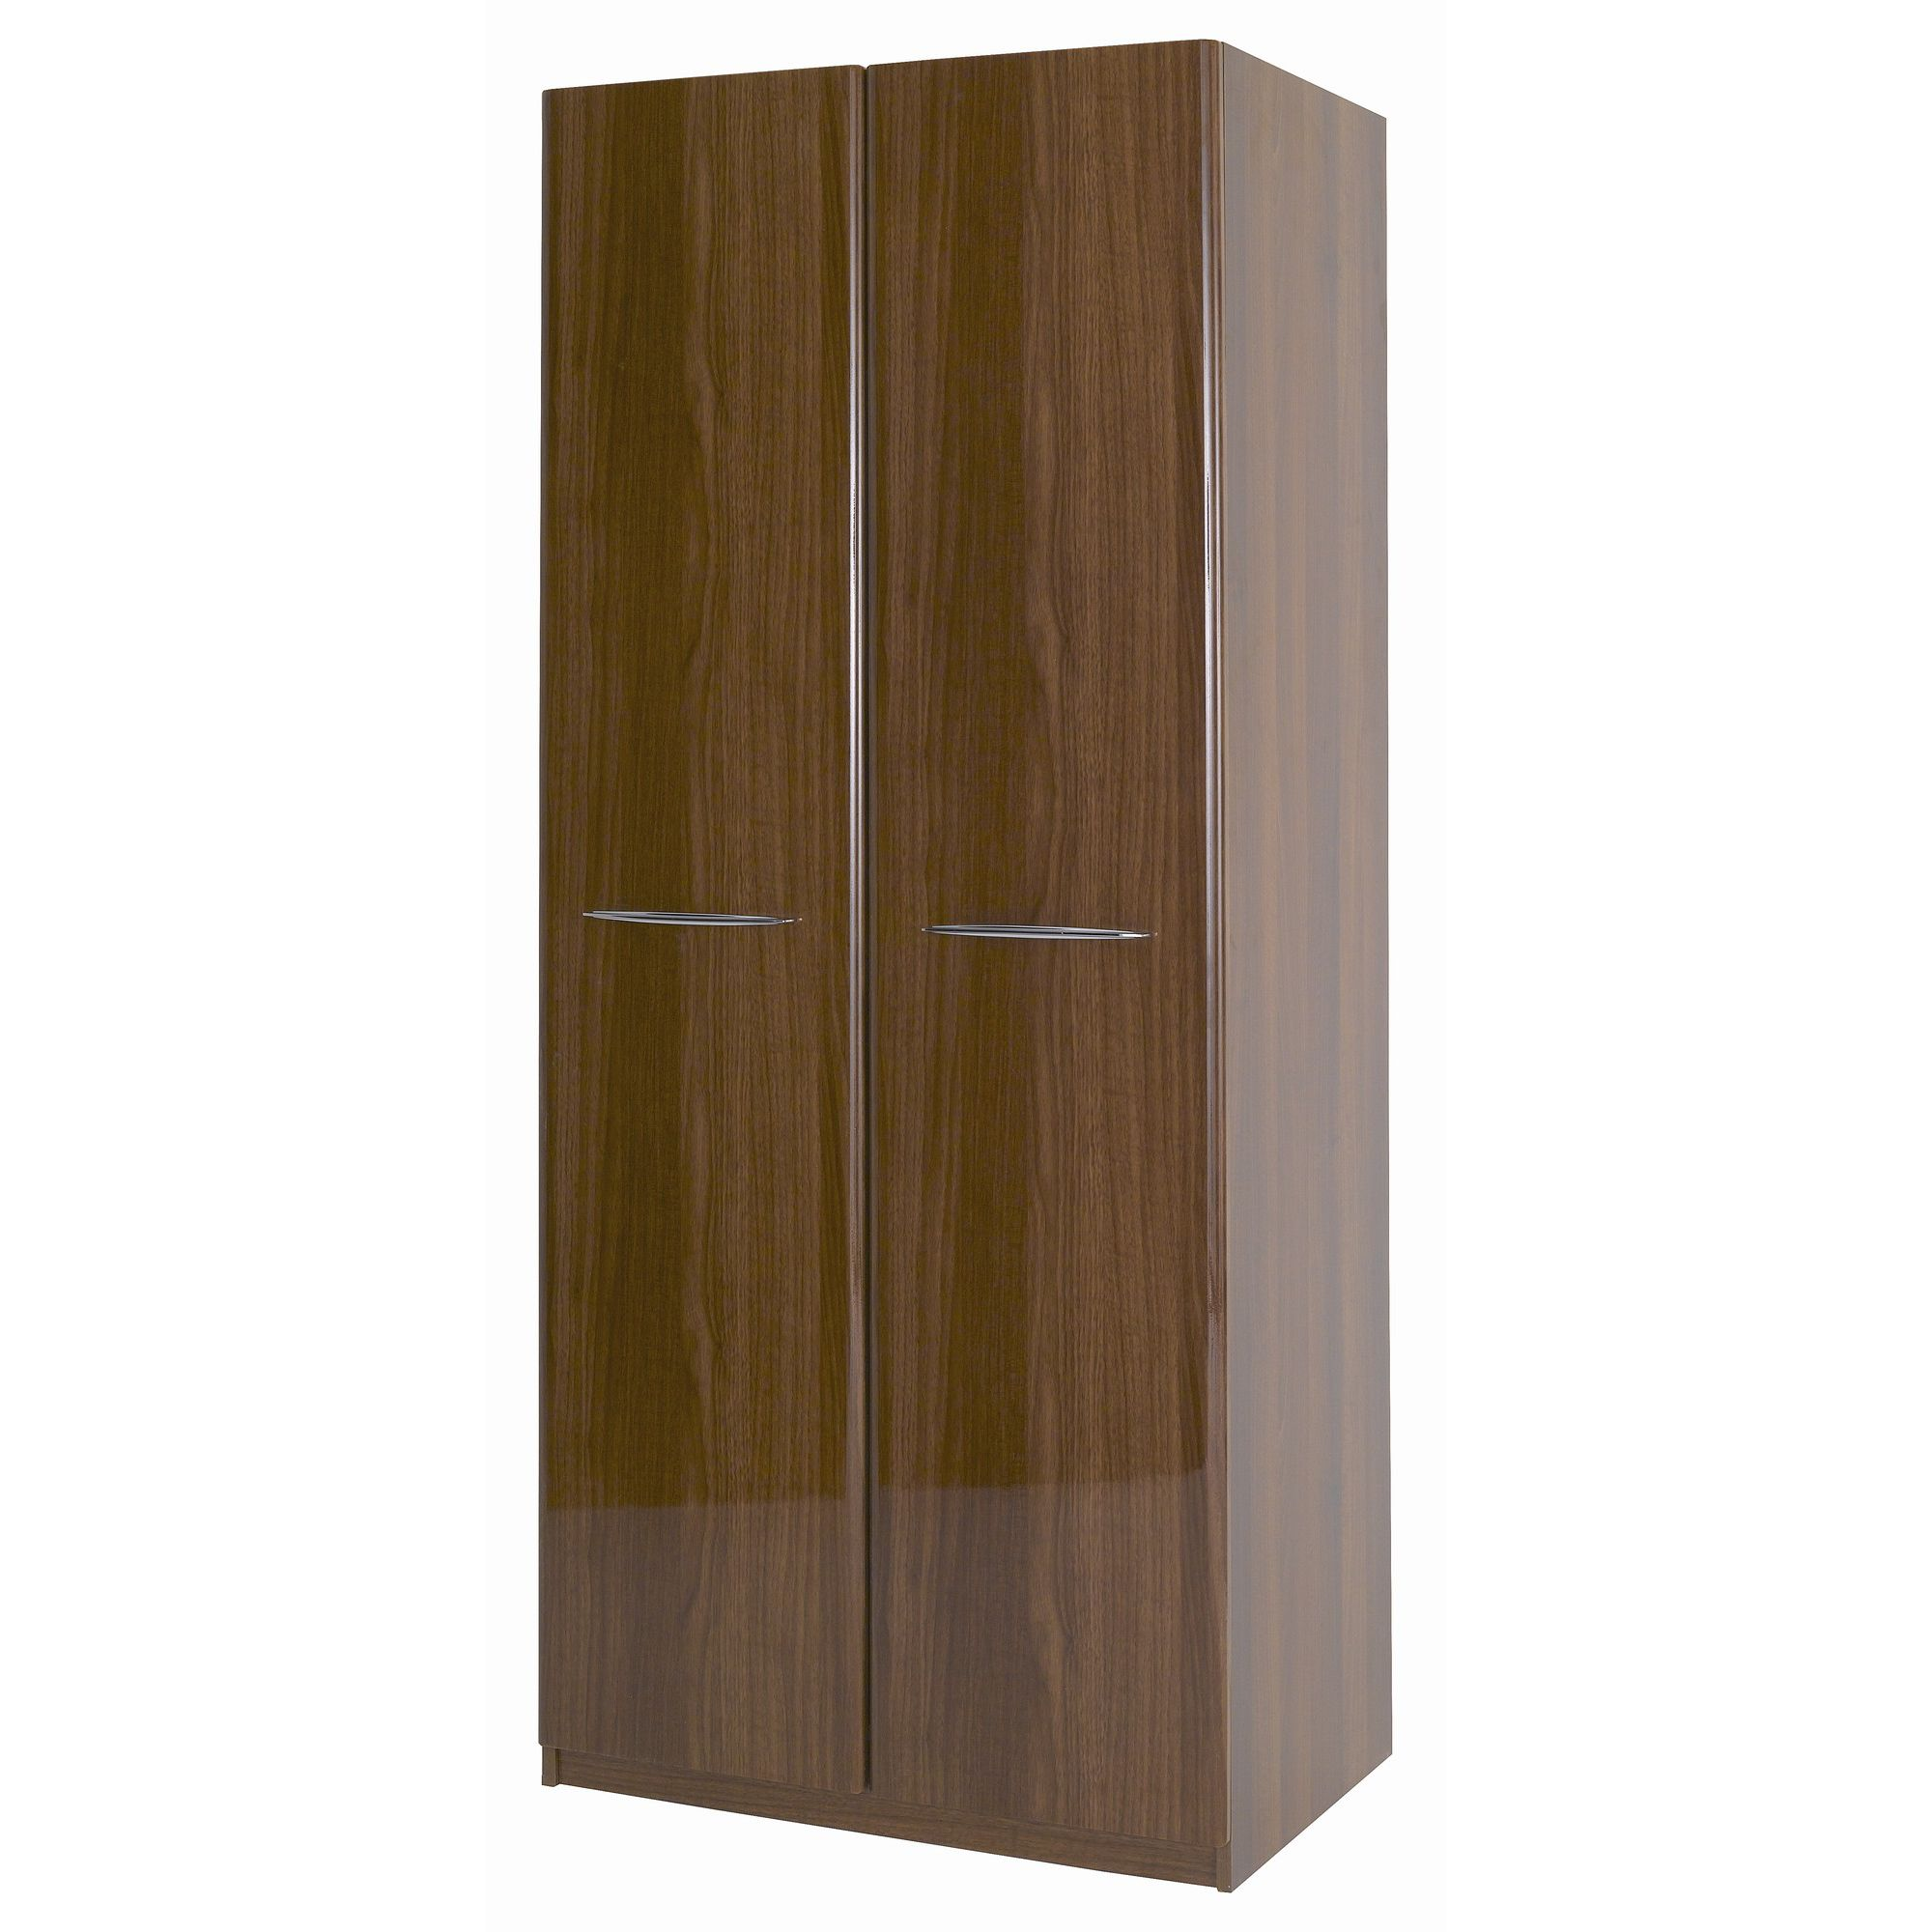 Alto Furniture Visualise Murano Two Door Wardrobe in High Gloss Walnut at Tesco Direct